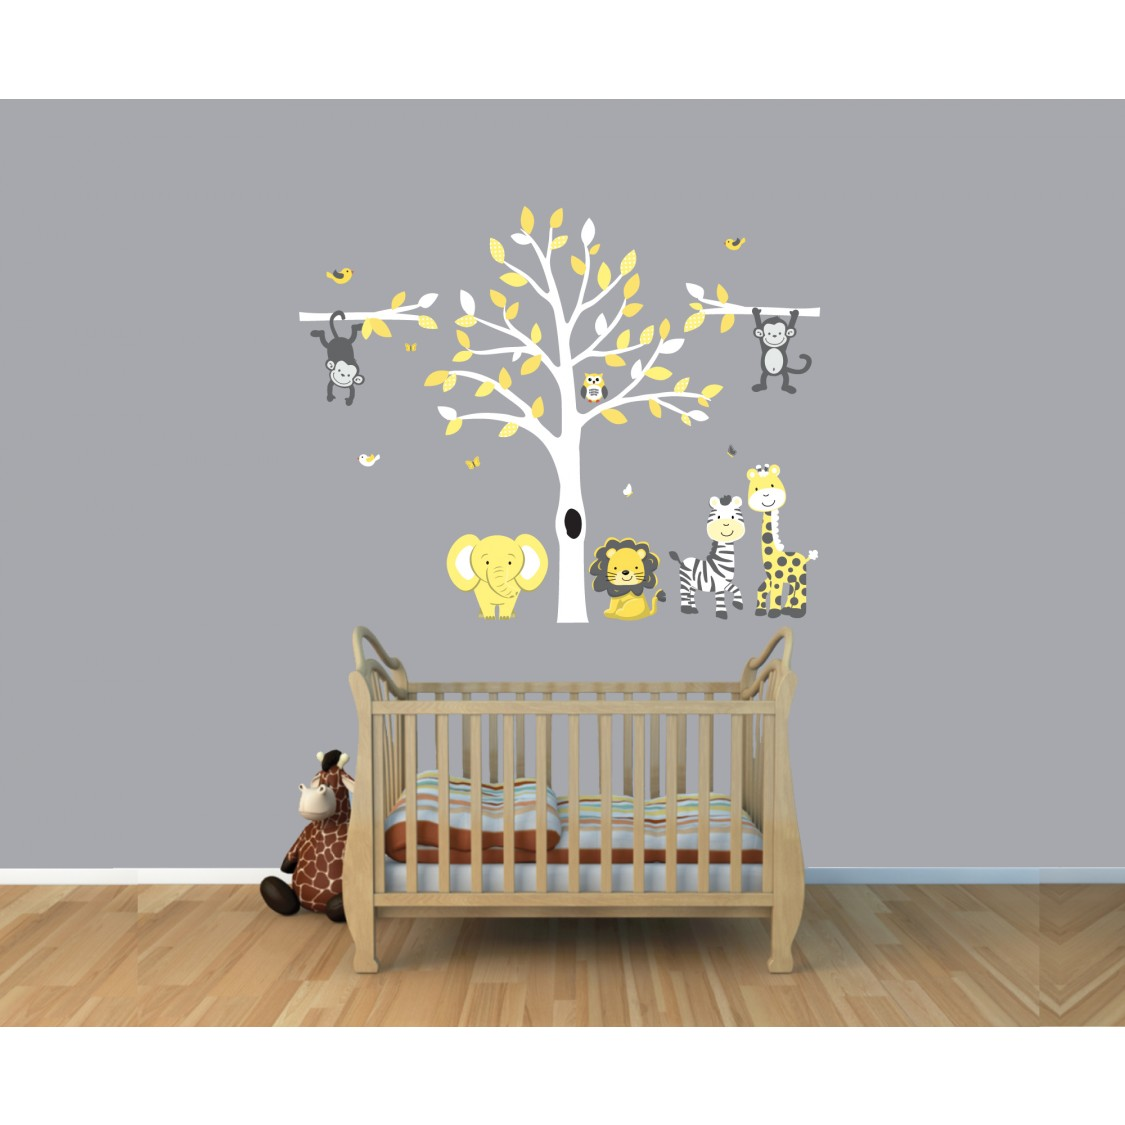 Yellow u0026 Gray Jungle Tree Wall Decal With Monkey Wall Stickers For Nursery or Baby Room  sc 1 st  Nursery Decals and More & Yellow u0026 Gray Jungle Tree Wall Decal With Monkey Wall Stickers For ...